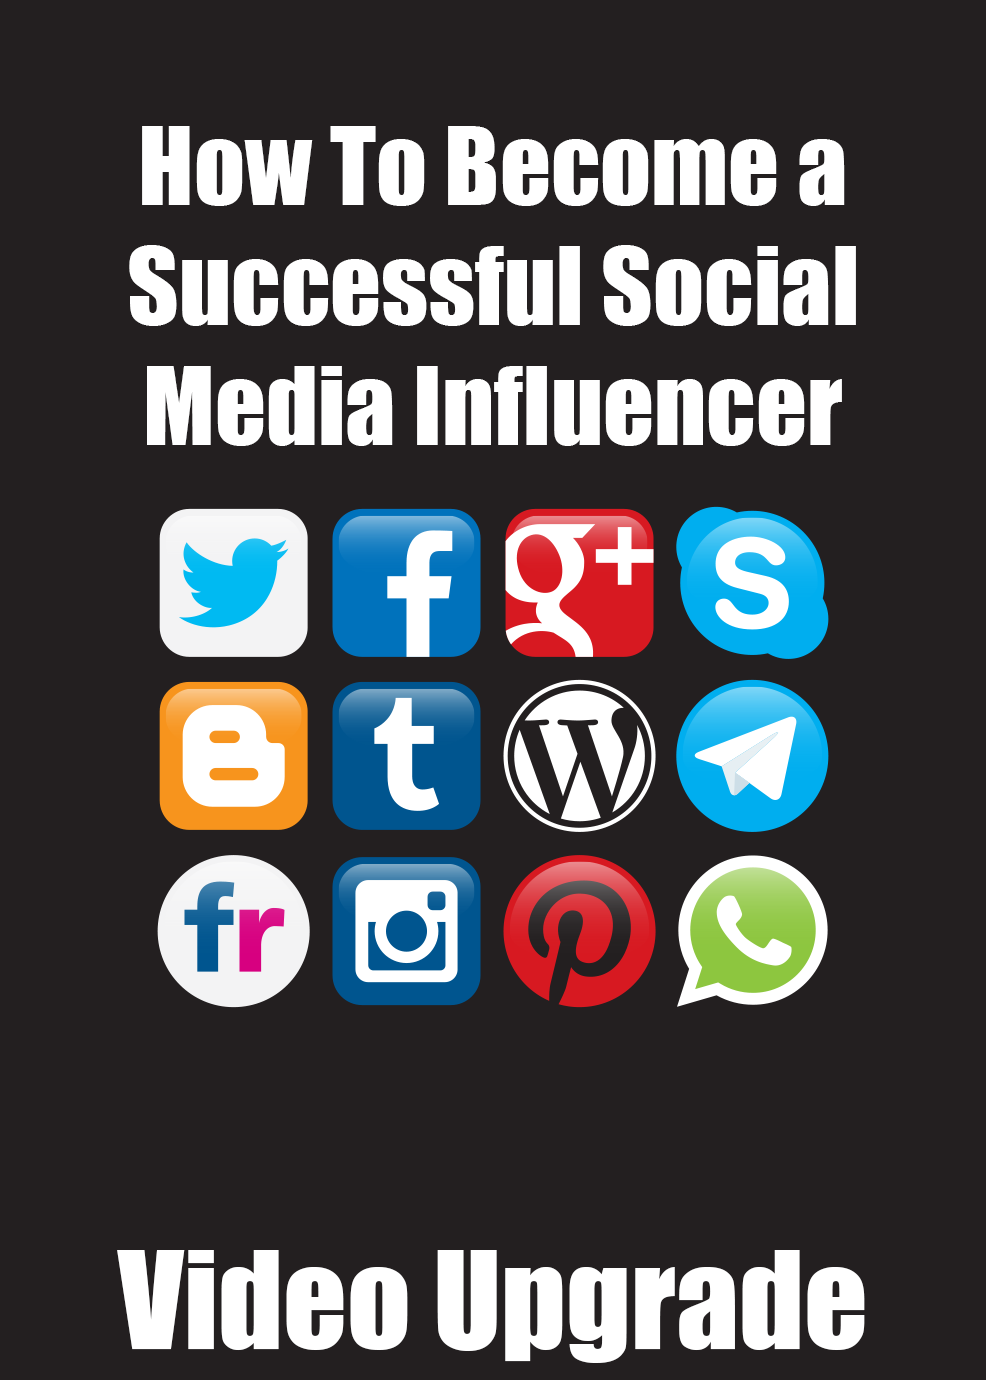 How To Become A Successful Social Media Influencer Video